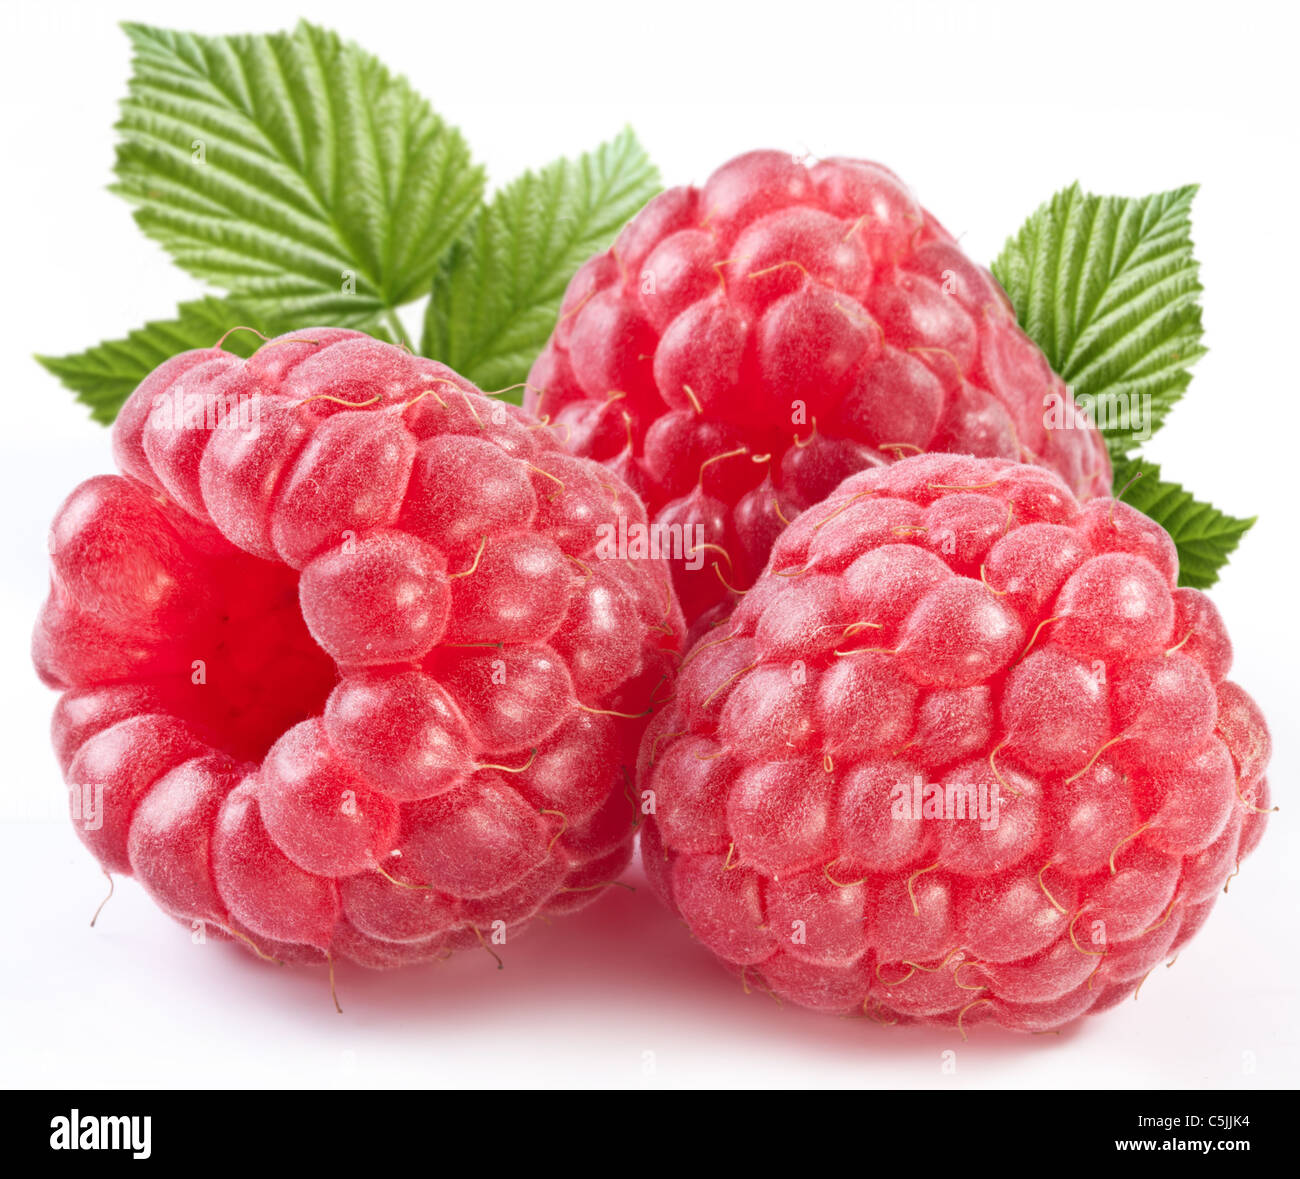 Three perfect ripe raspberries with leaves. Isolated on a white background. - Stock Image